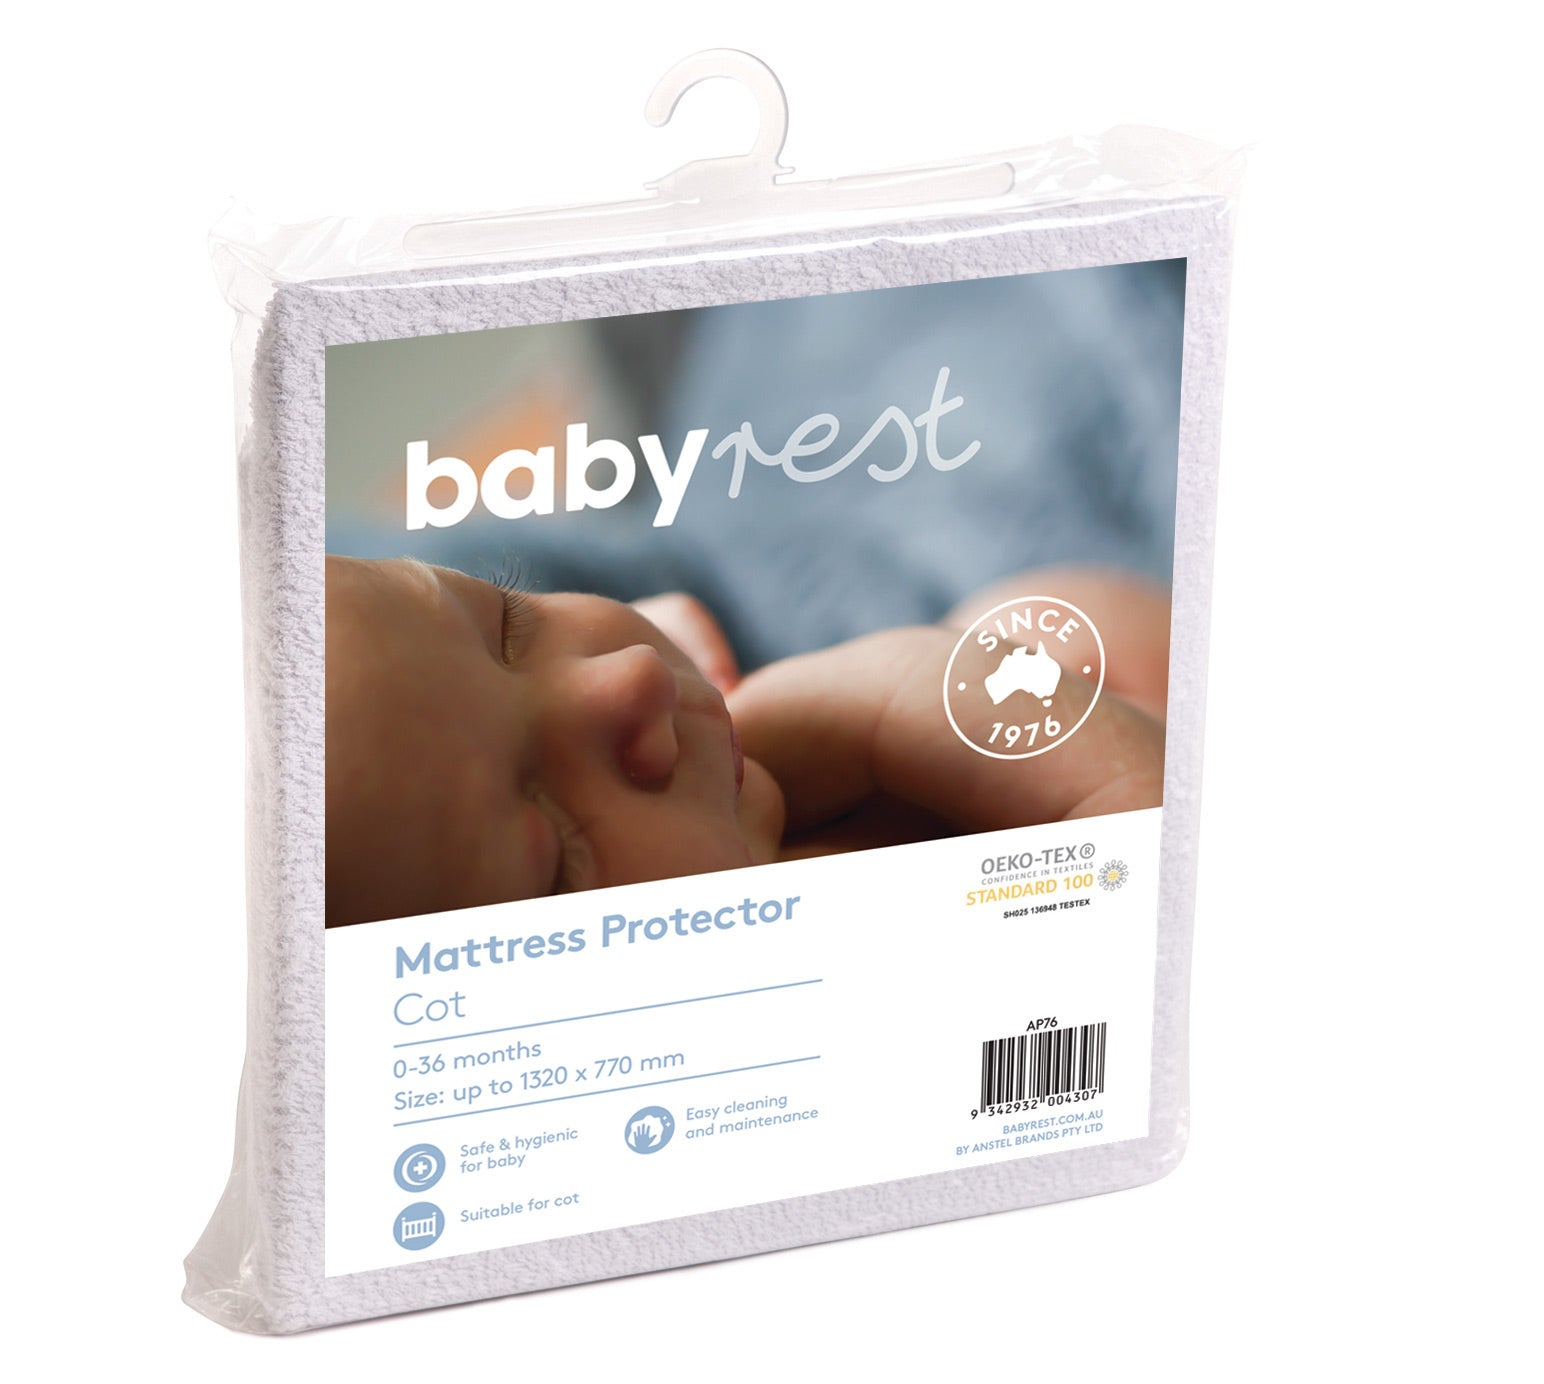 Babyrest Mattress Protector XL Cot 1320 x 770